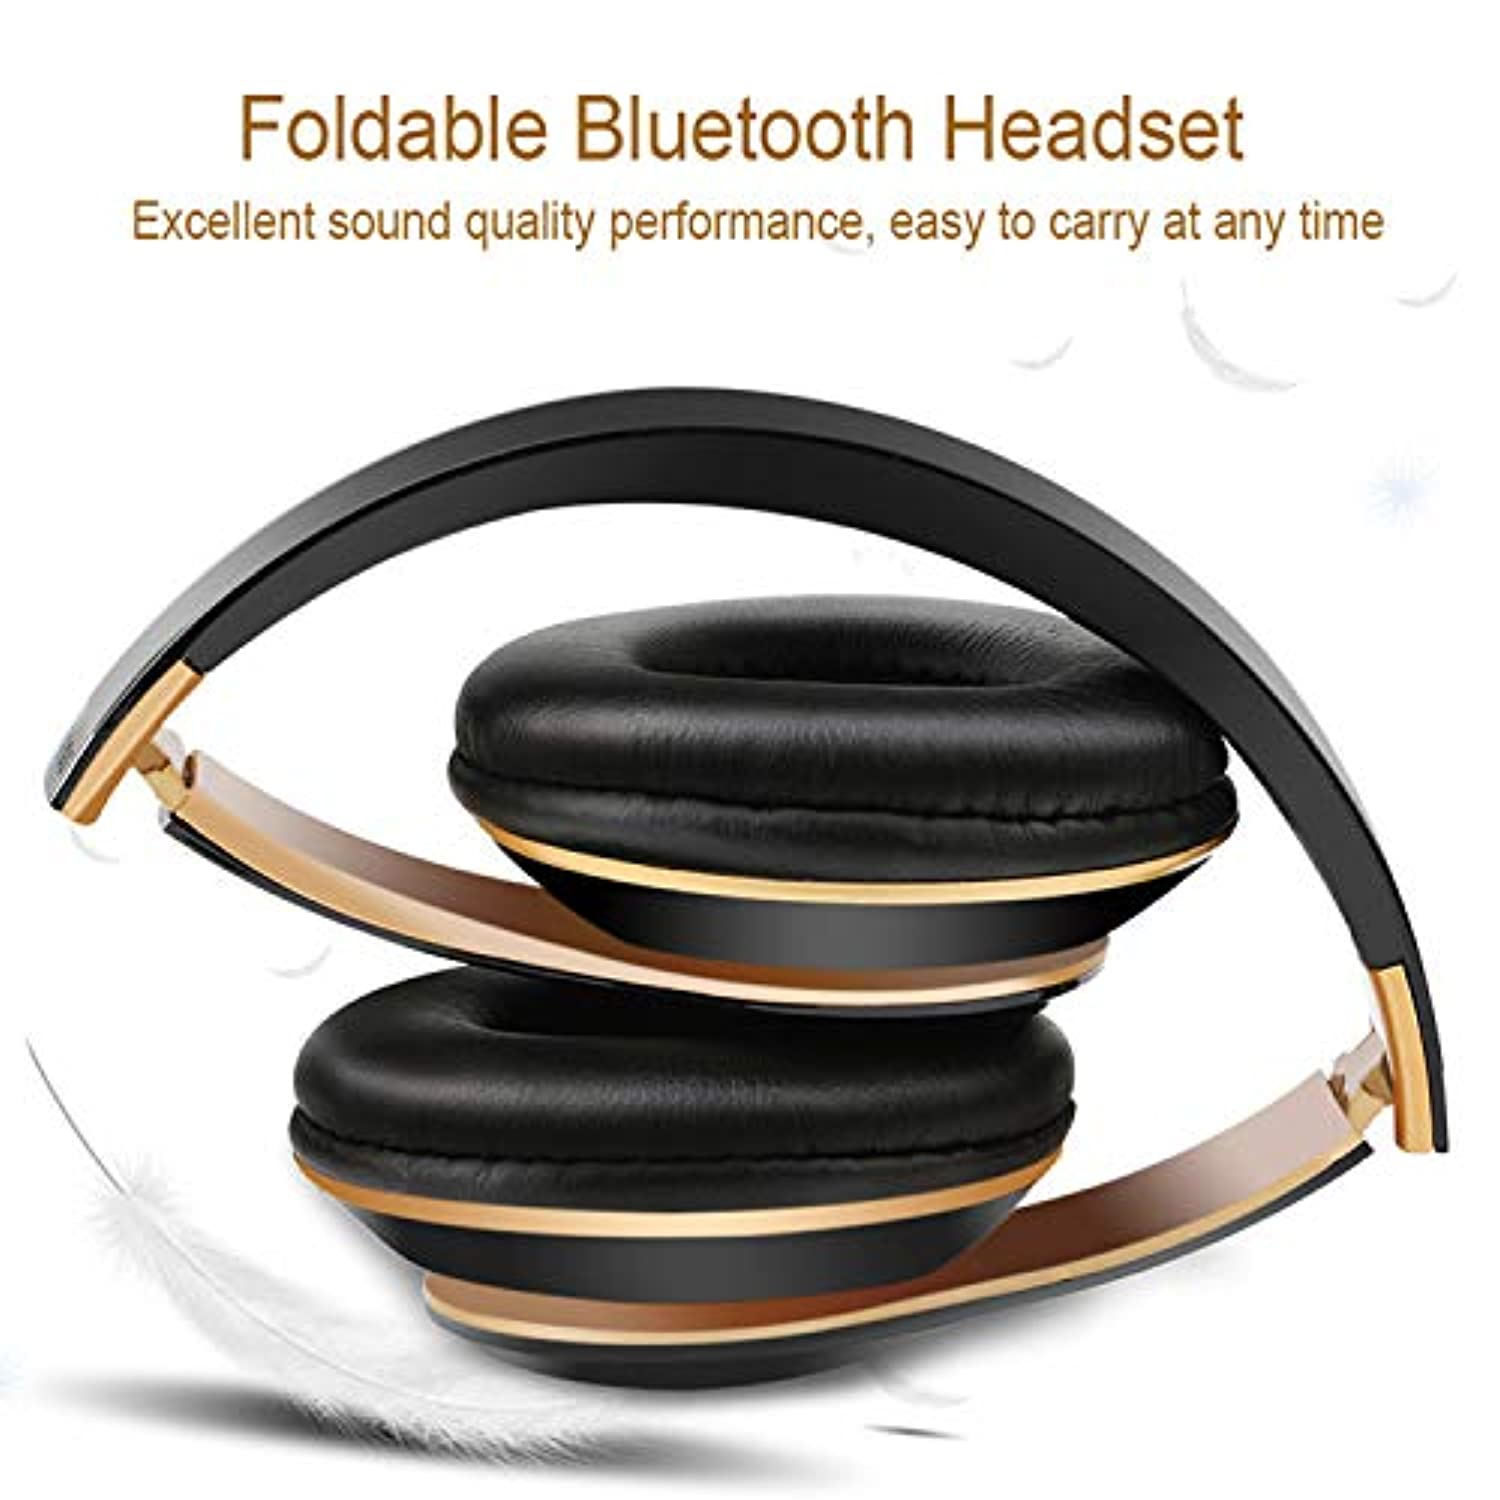 Foldable headphones, Bluetooth earphones, over ear headphones